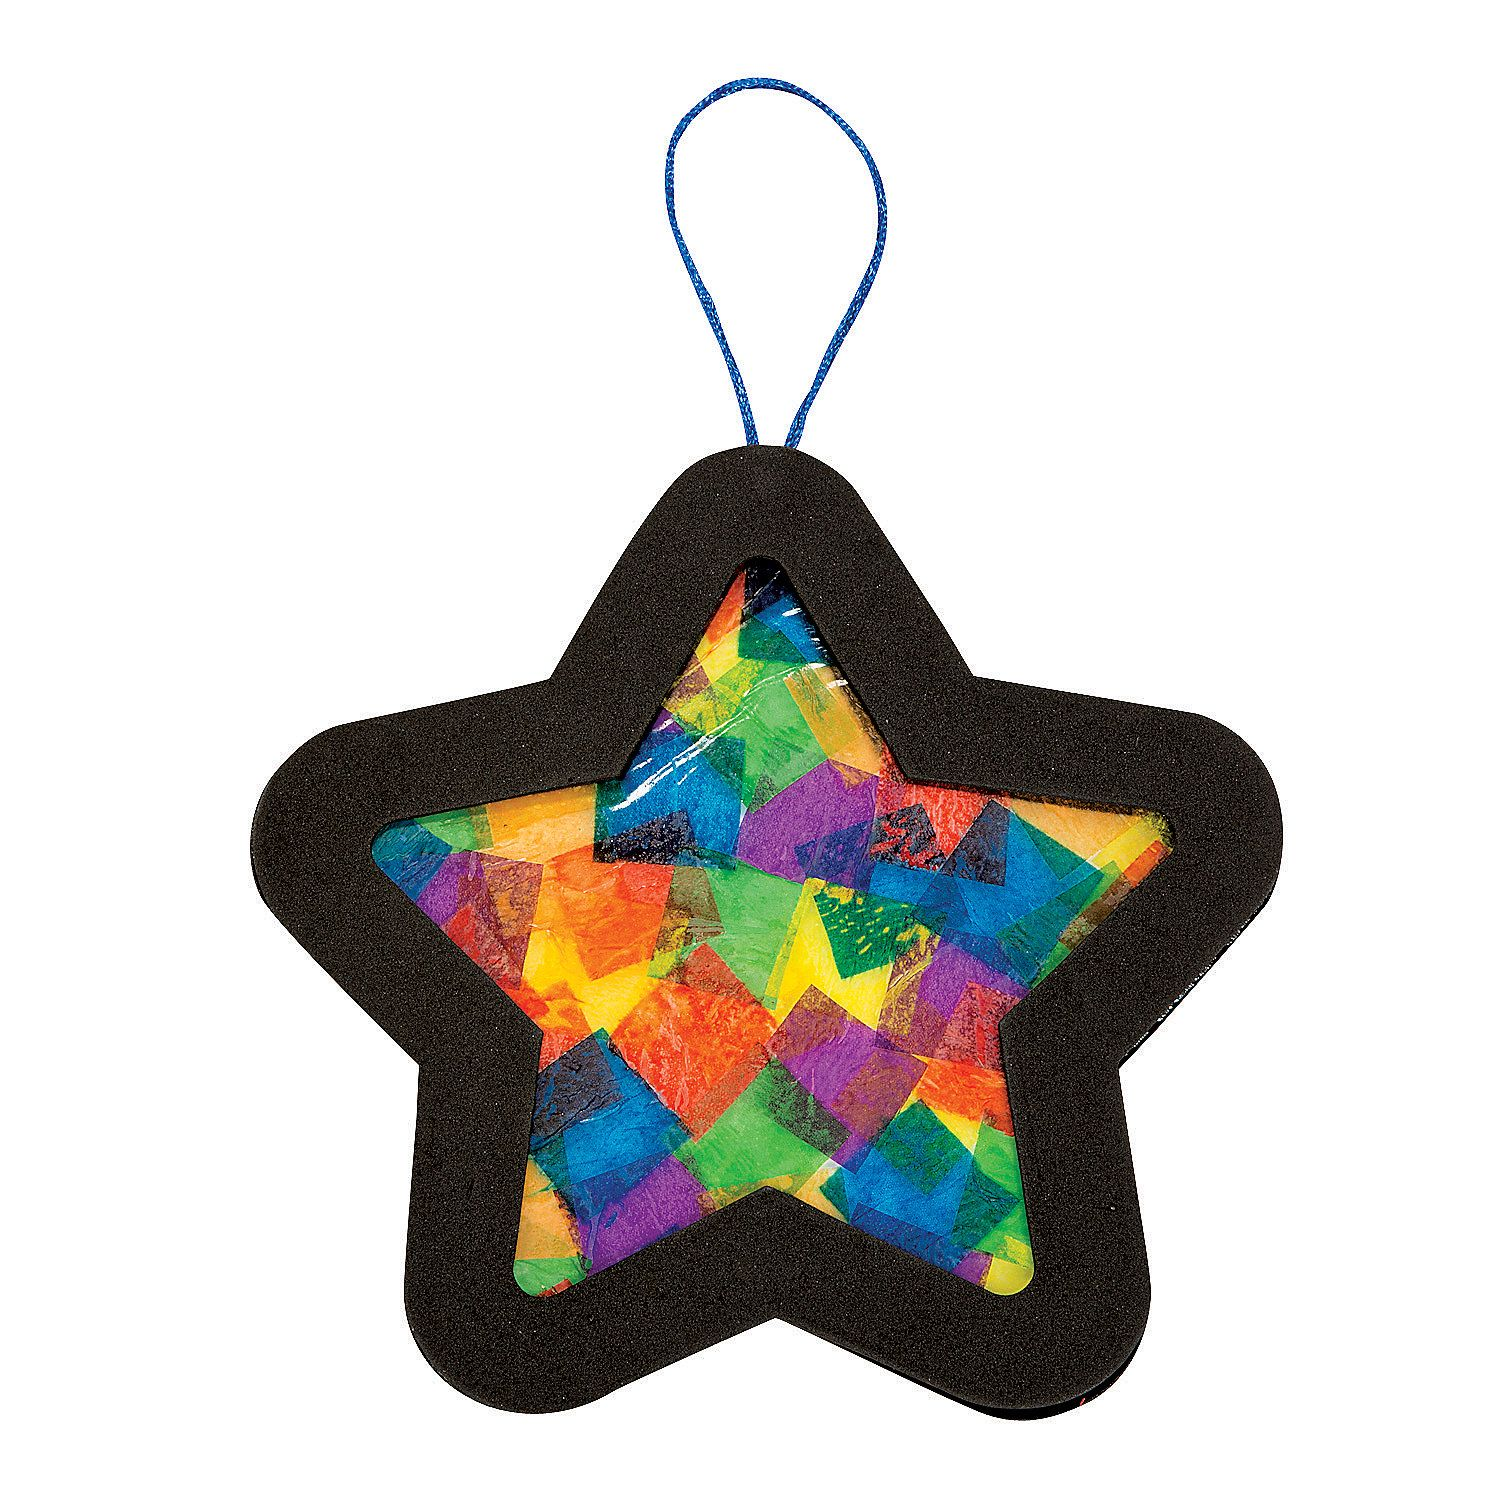 Hang Up This Colorful Star To Bring A New Light To Your